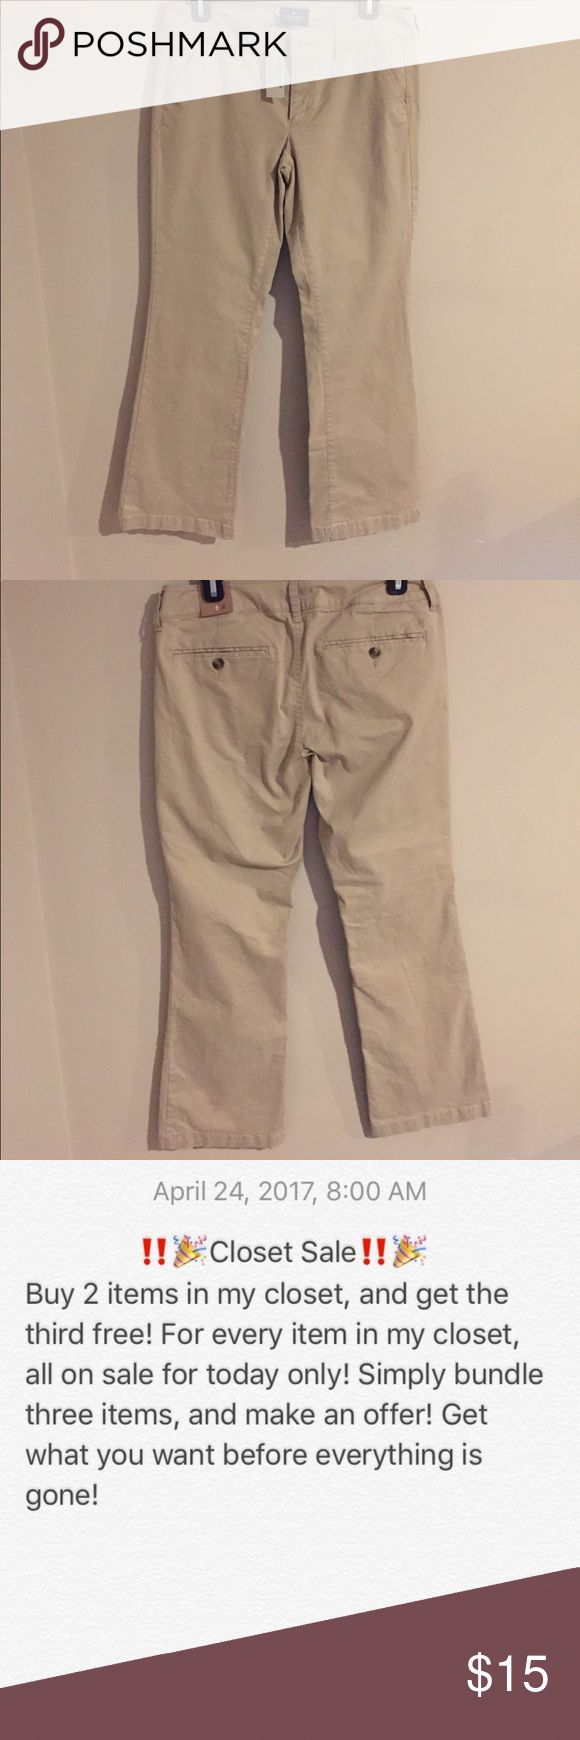 NWT American Eagle Pants Short Kick boot pants. Size 6 women's. Great pants. High quality. American Eagle Outfitters Pants Trousers